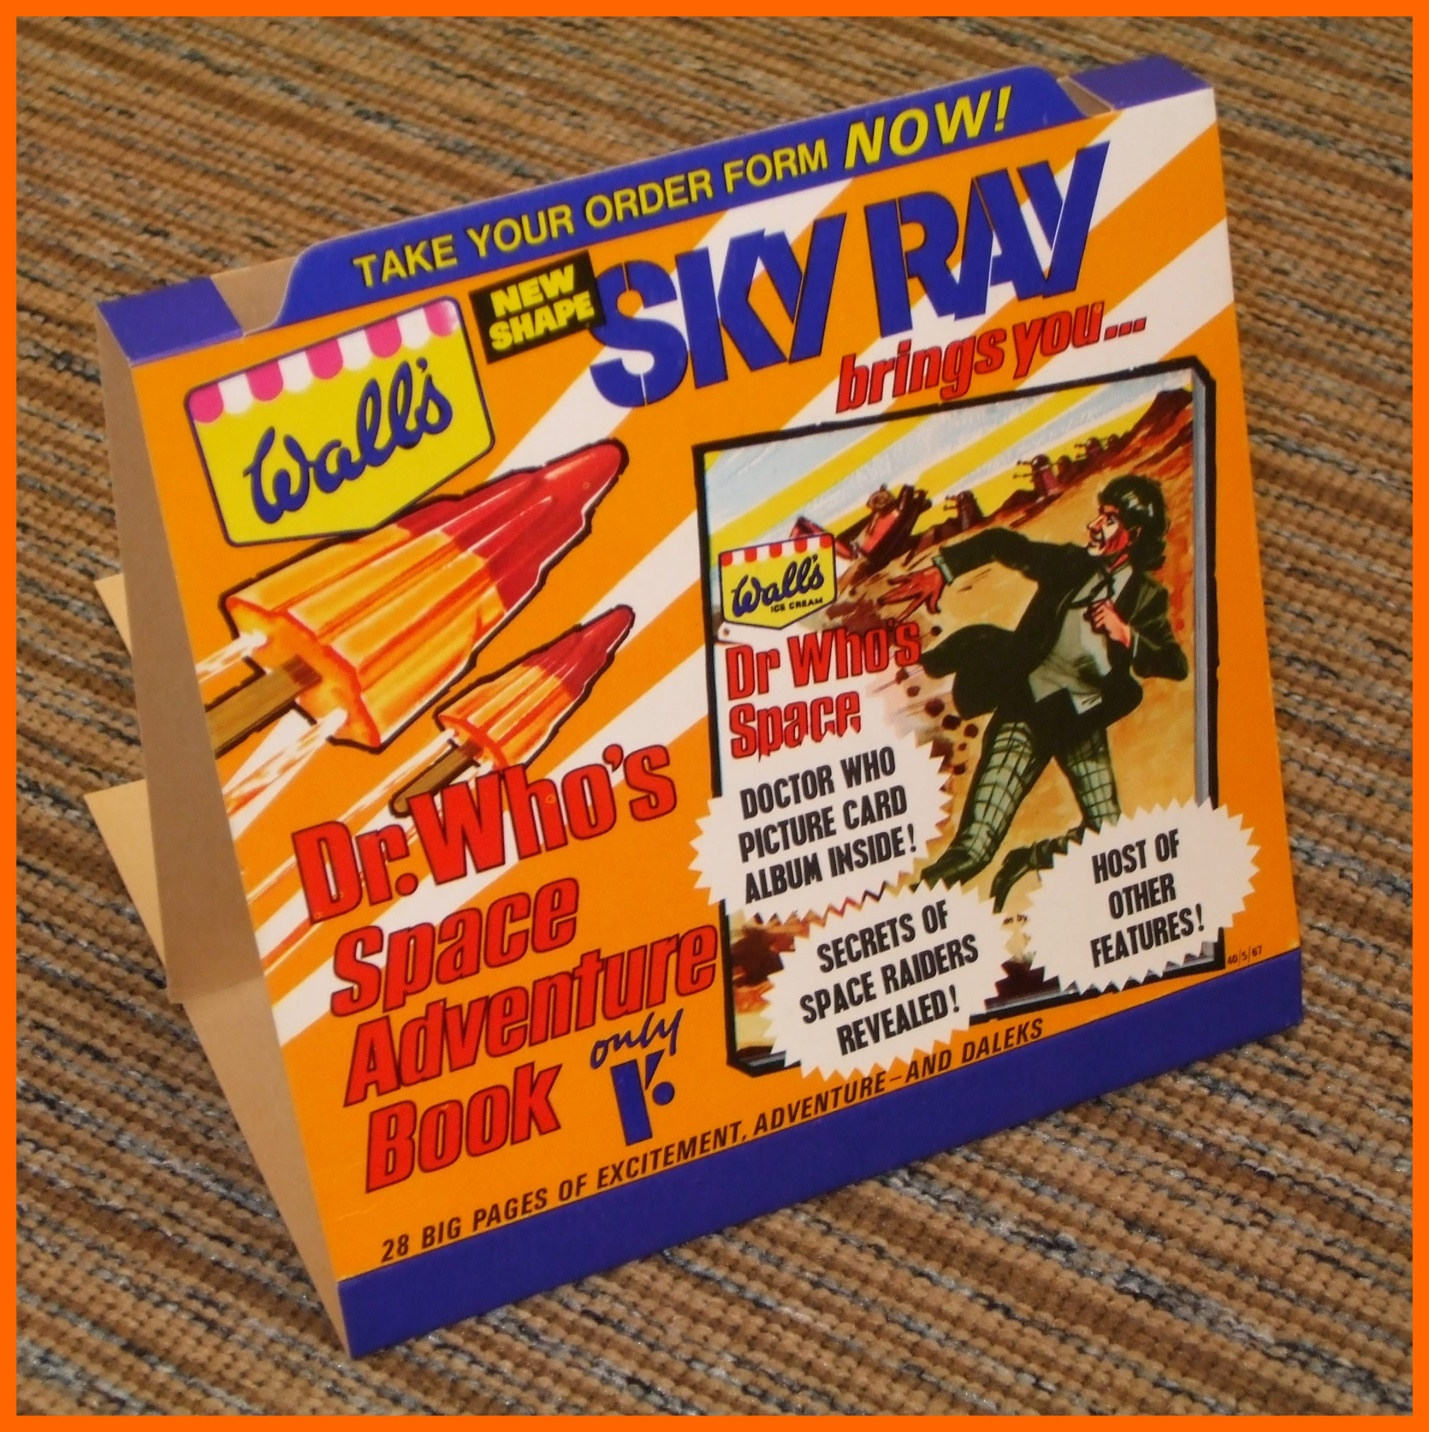 WANTED - Shop counter display that held the order forms for the Wall's Sky Ray Space Adventures Book (image courtesy of Richard Bignell)